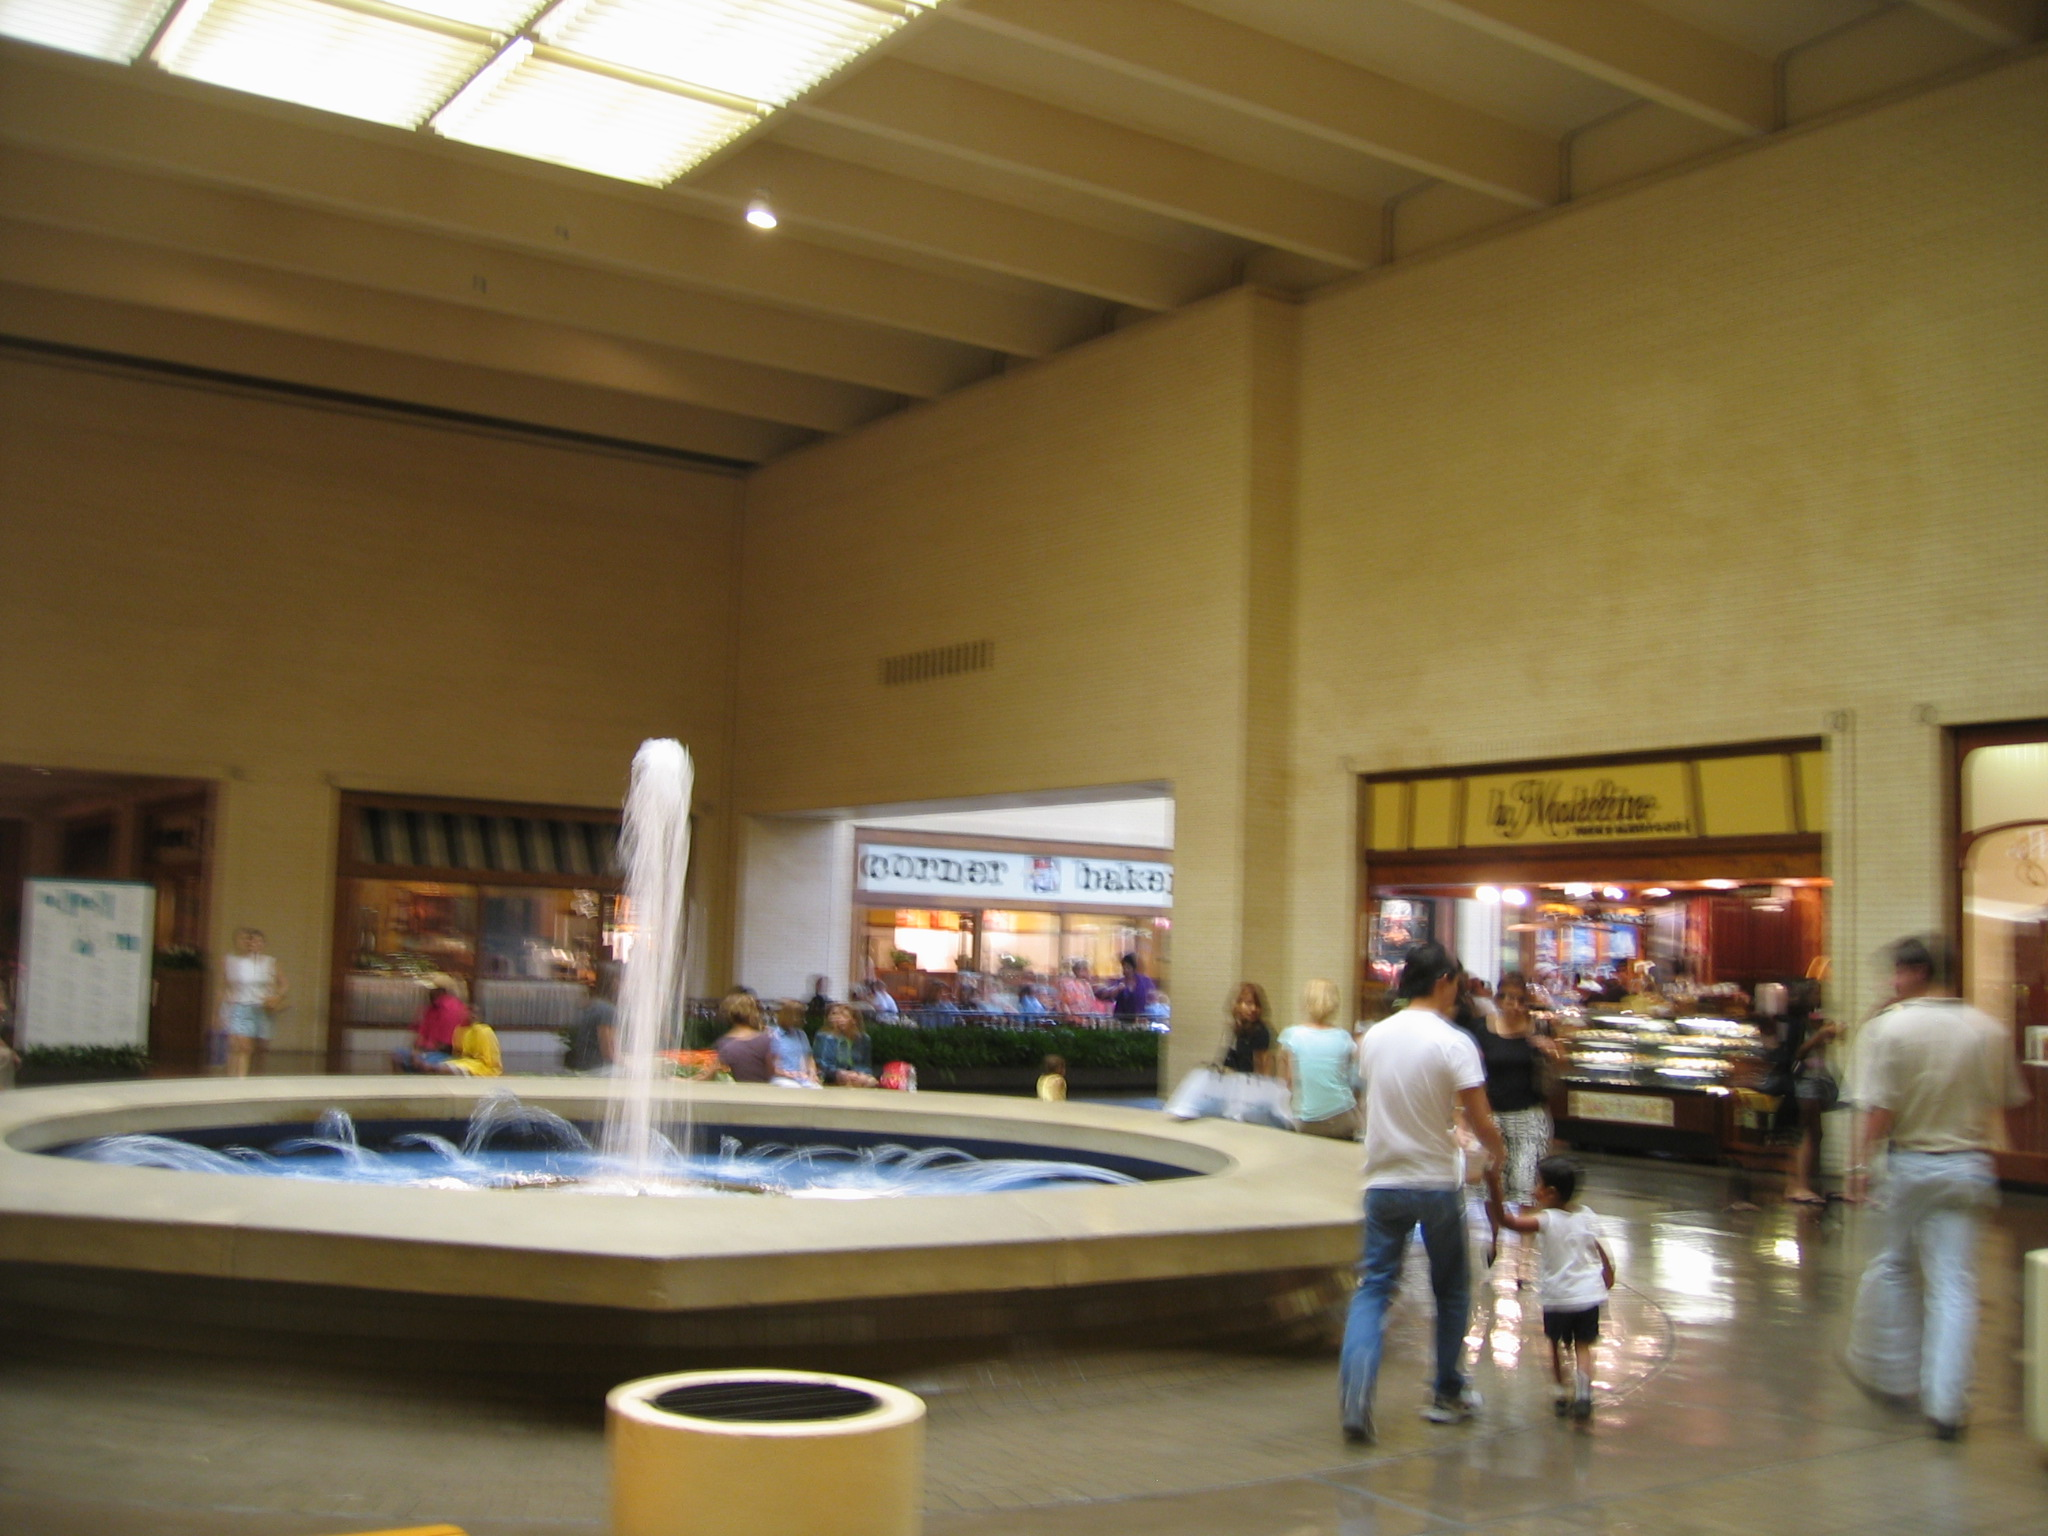 northpark-center-03.JPG